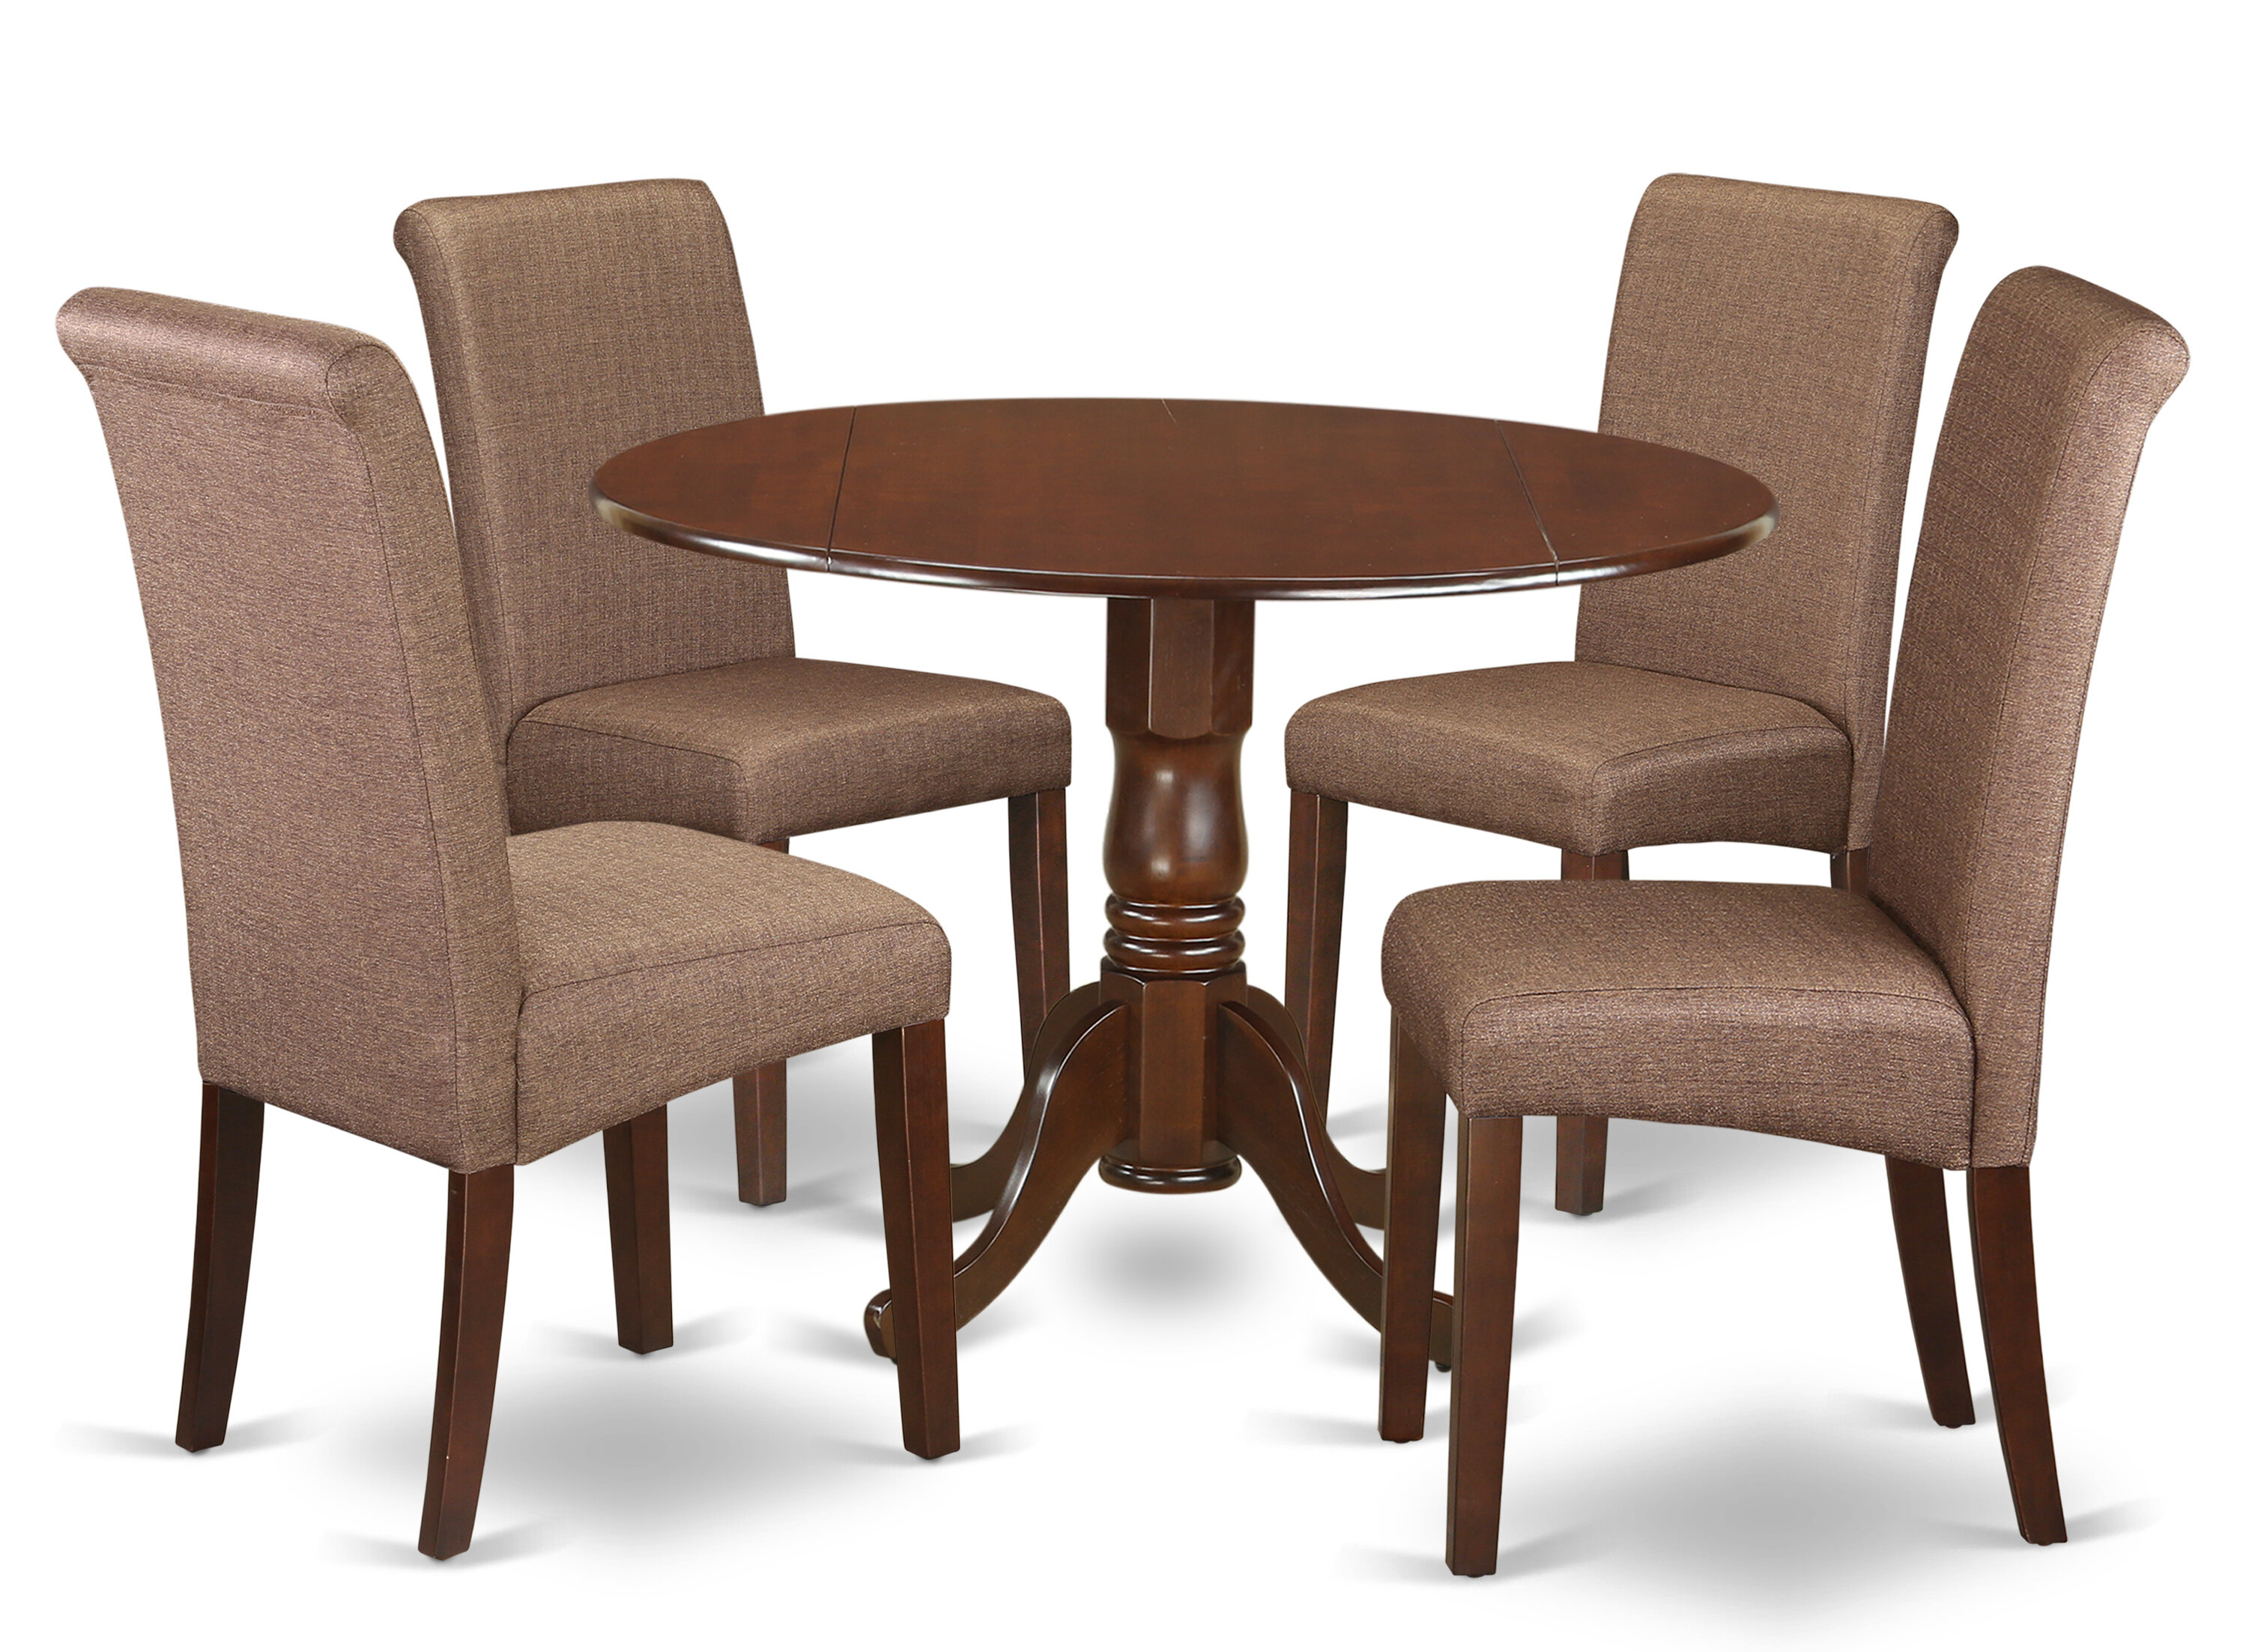 Charlton Home® Parise Small Table 5 Piece Drop Leaf Solid Wood